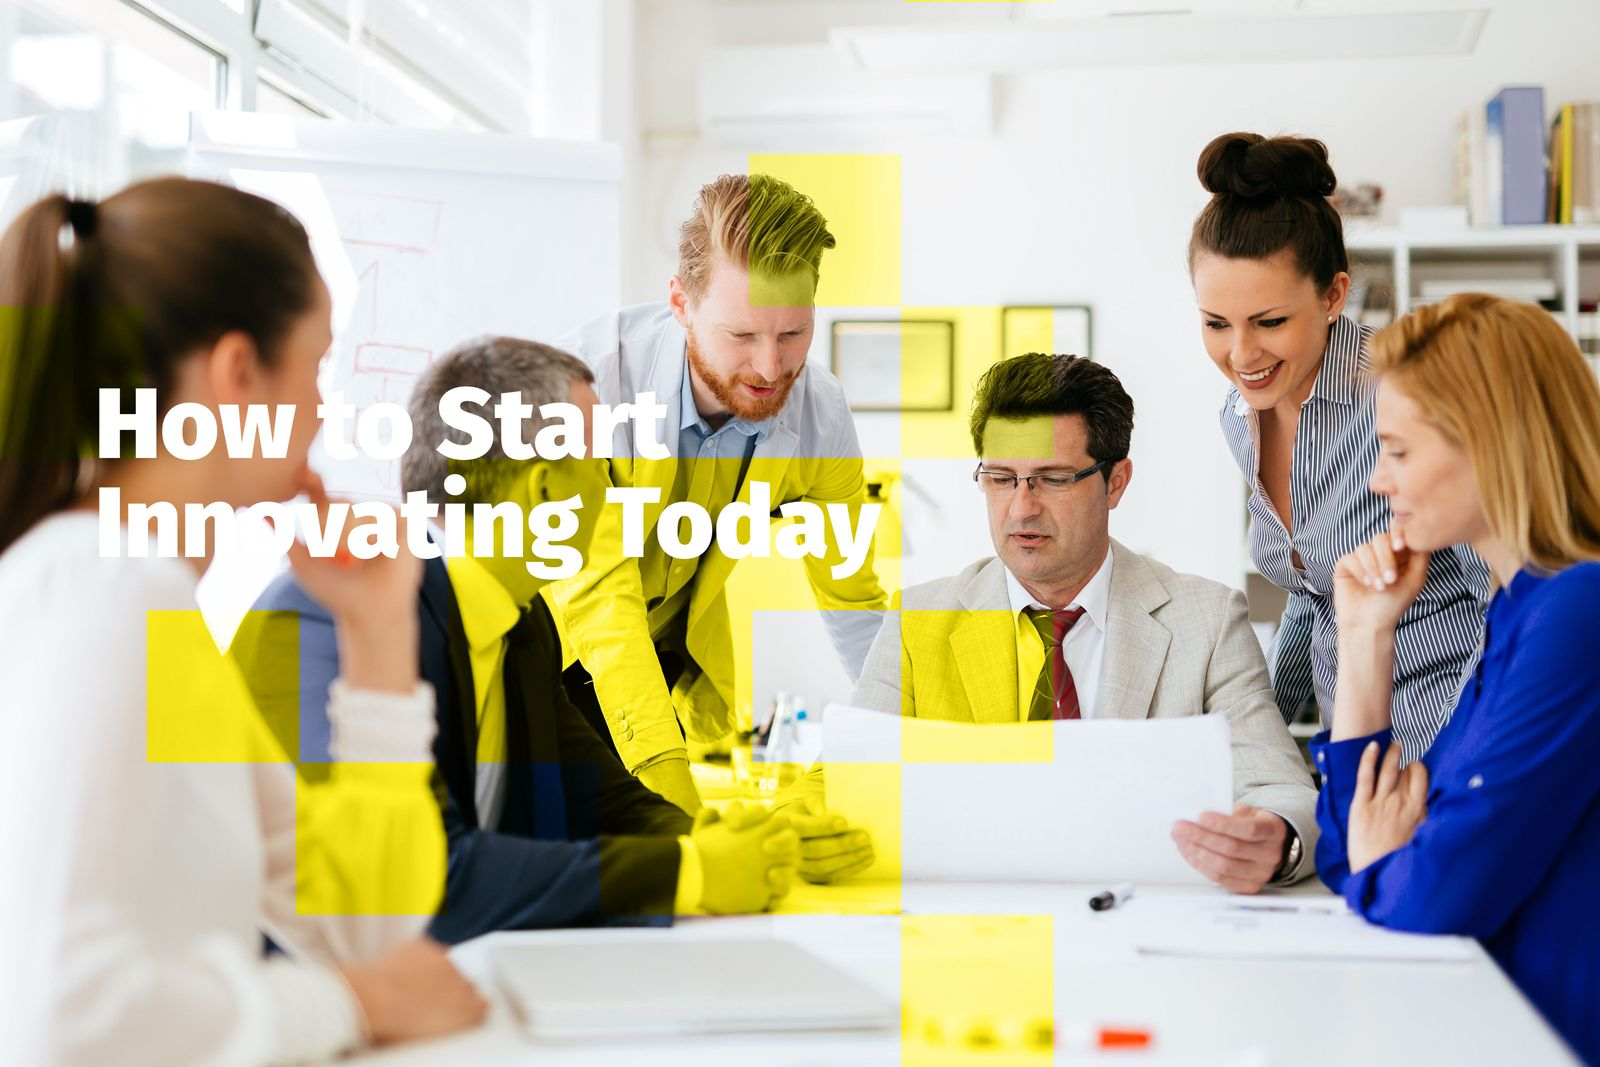 How to start innovating today